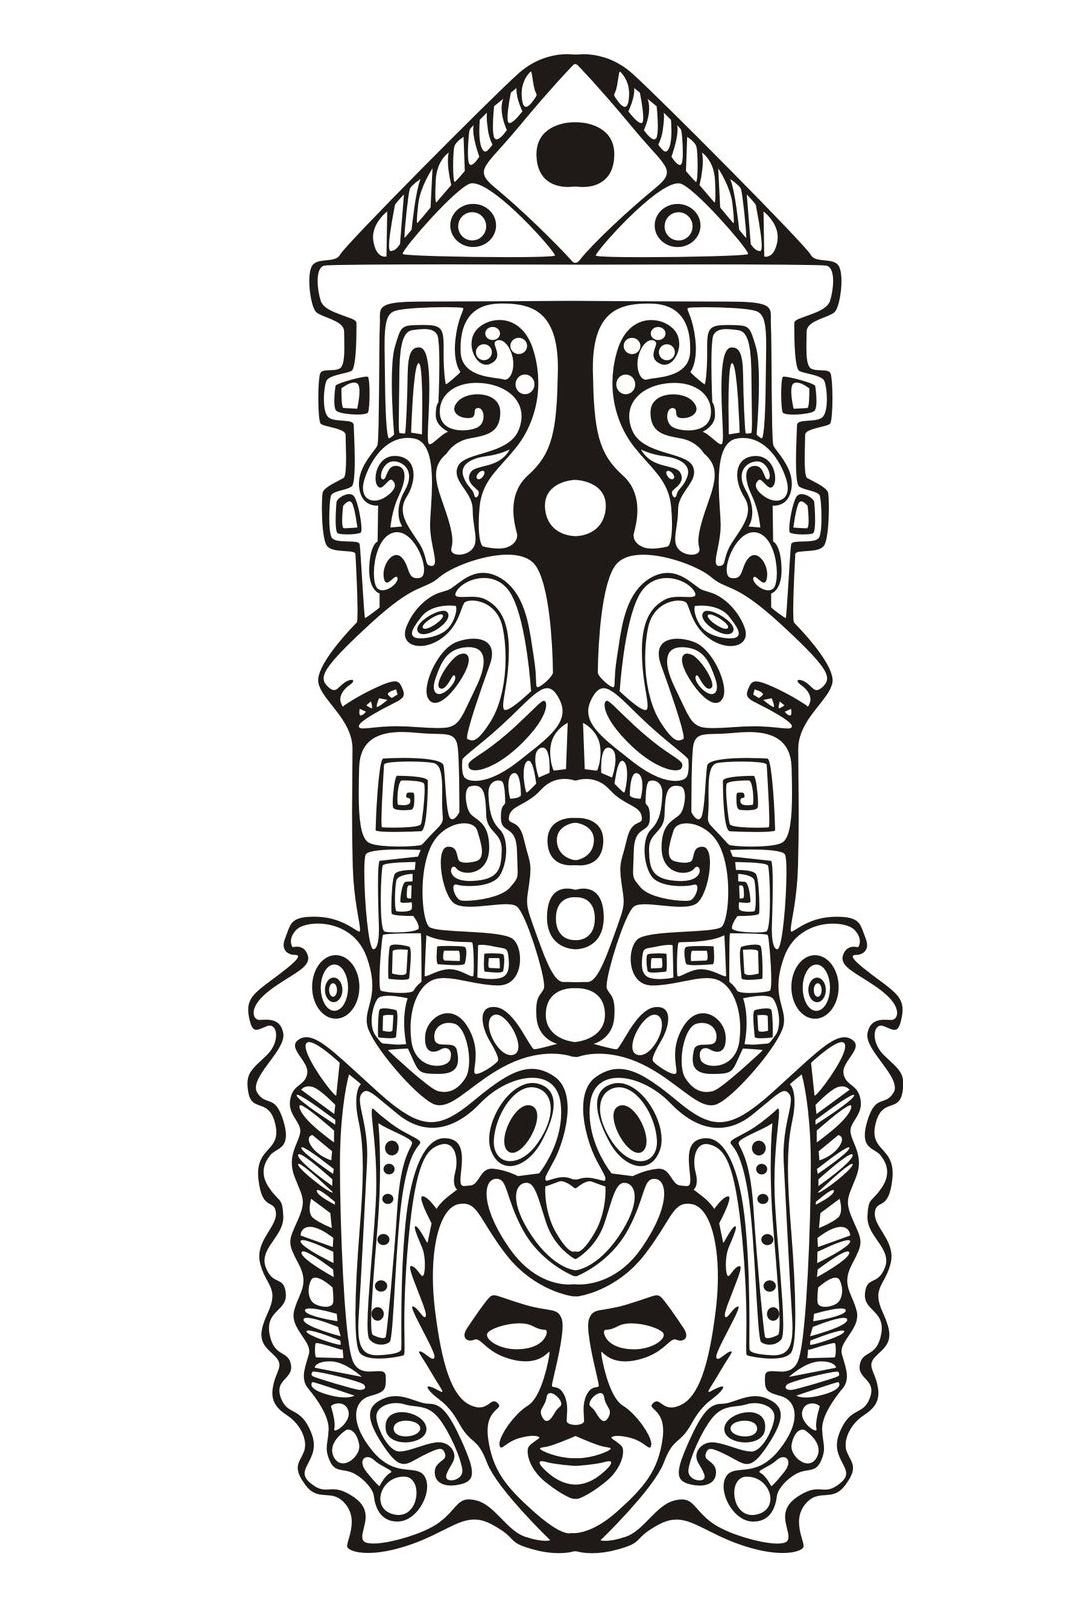 Totem Inspired By Aztecs Mayans And Incas